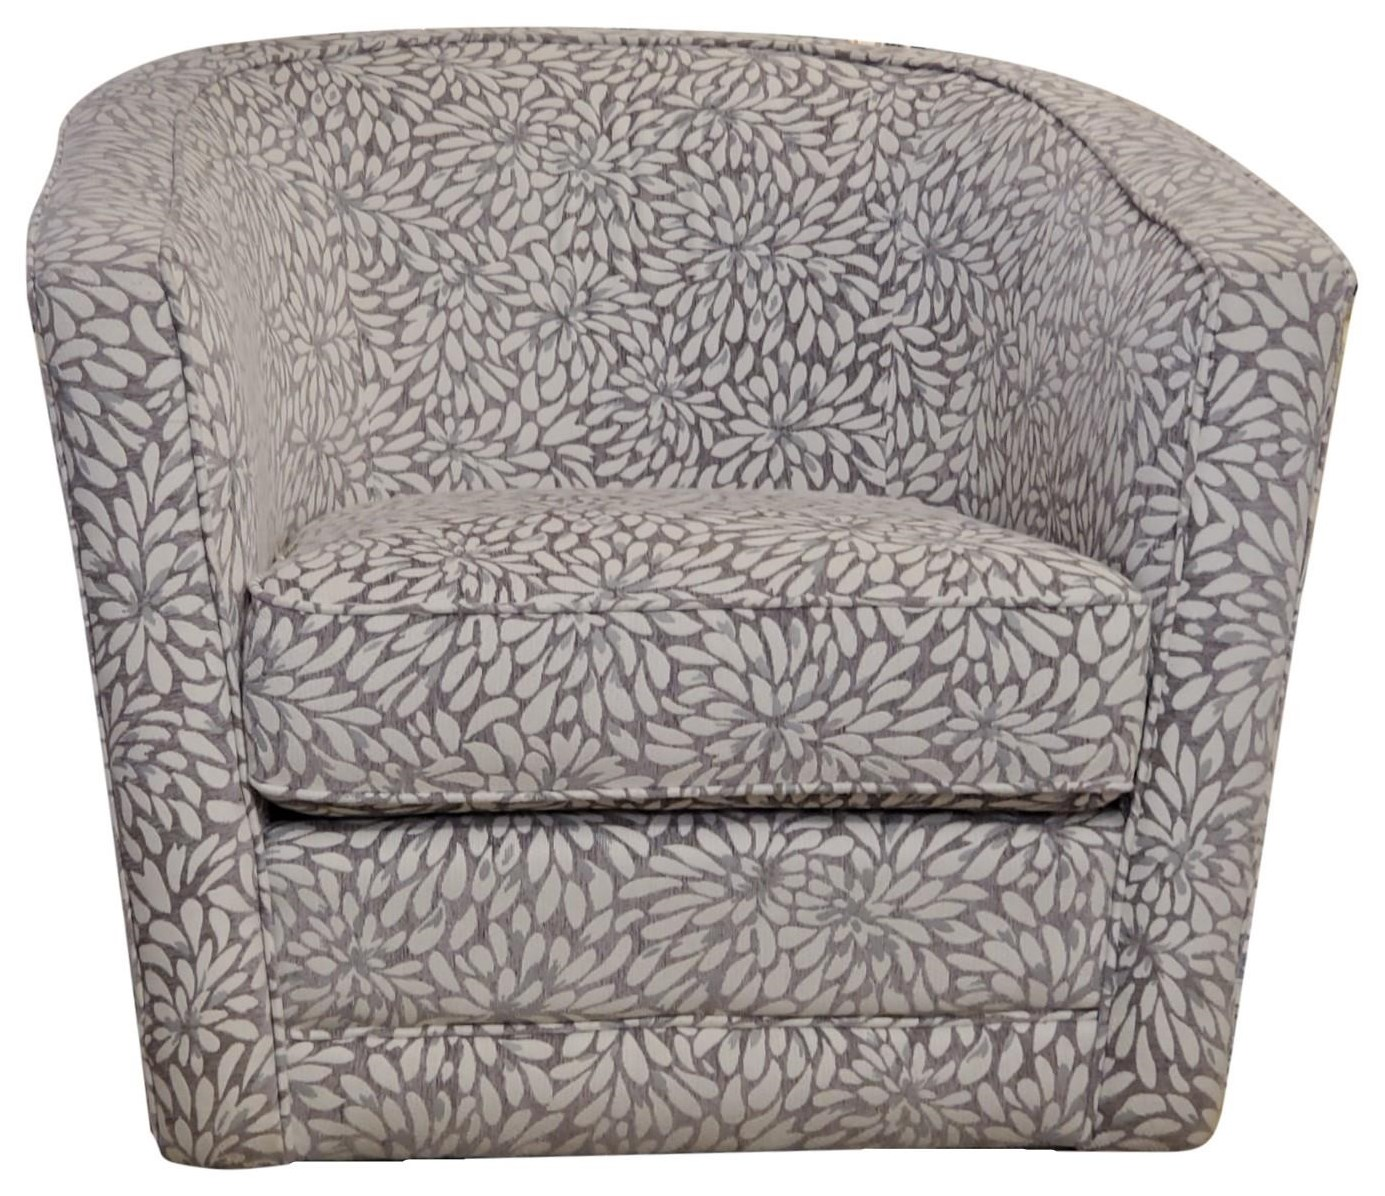 2693 Swivel Chair by Decor-Rest at Upper Room Home Furnishings